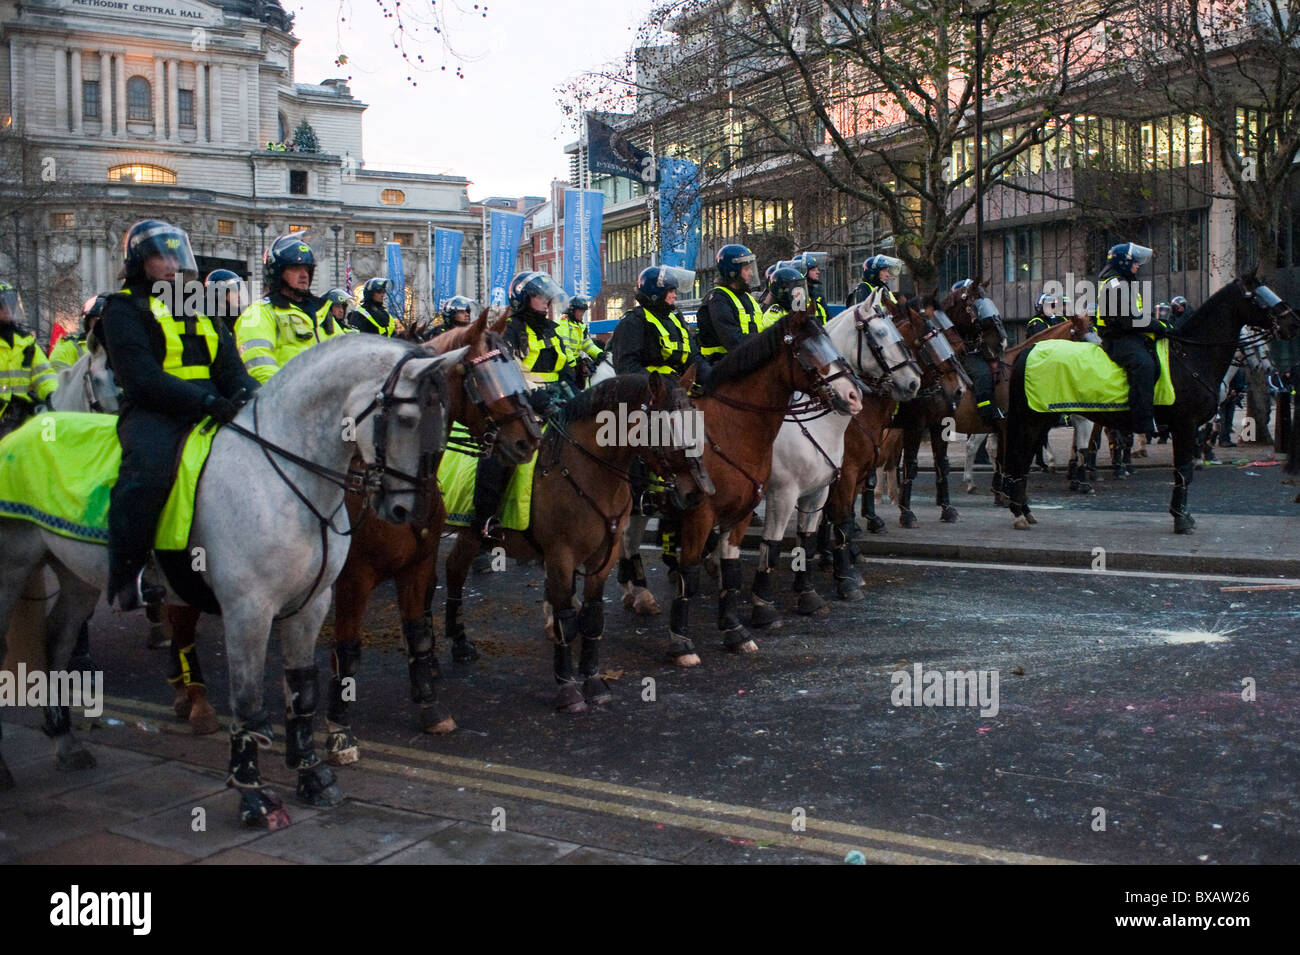 Metropolitan police horses on duty during student riots in London in 2010. - Stock Image